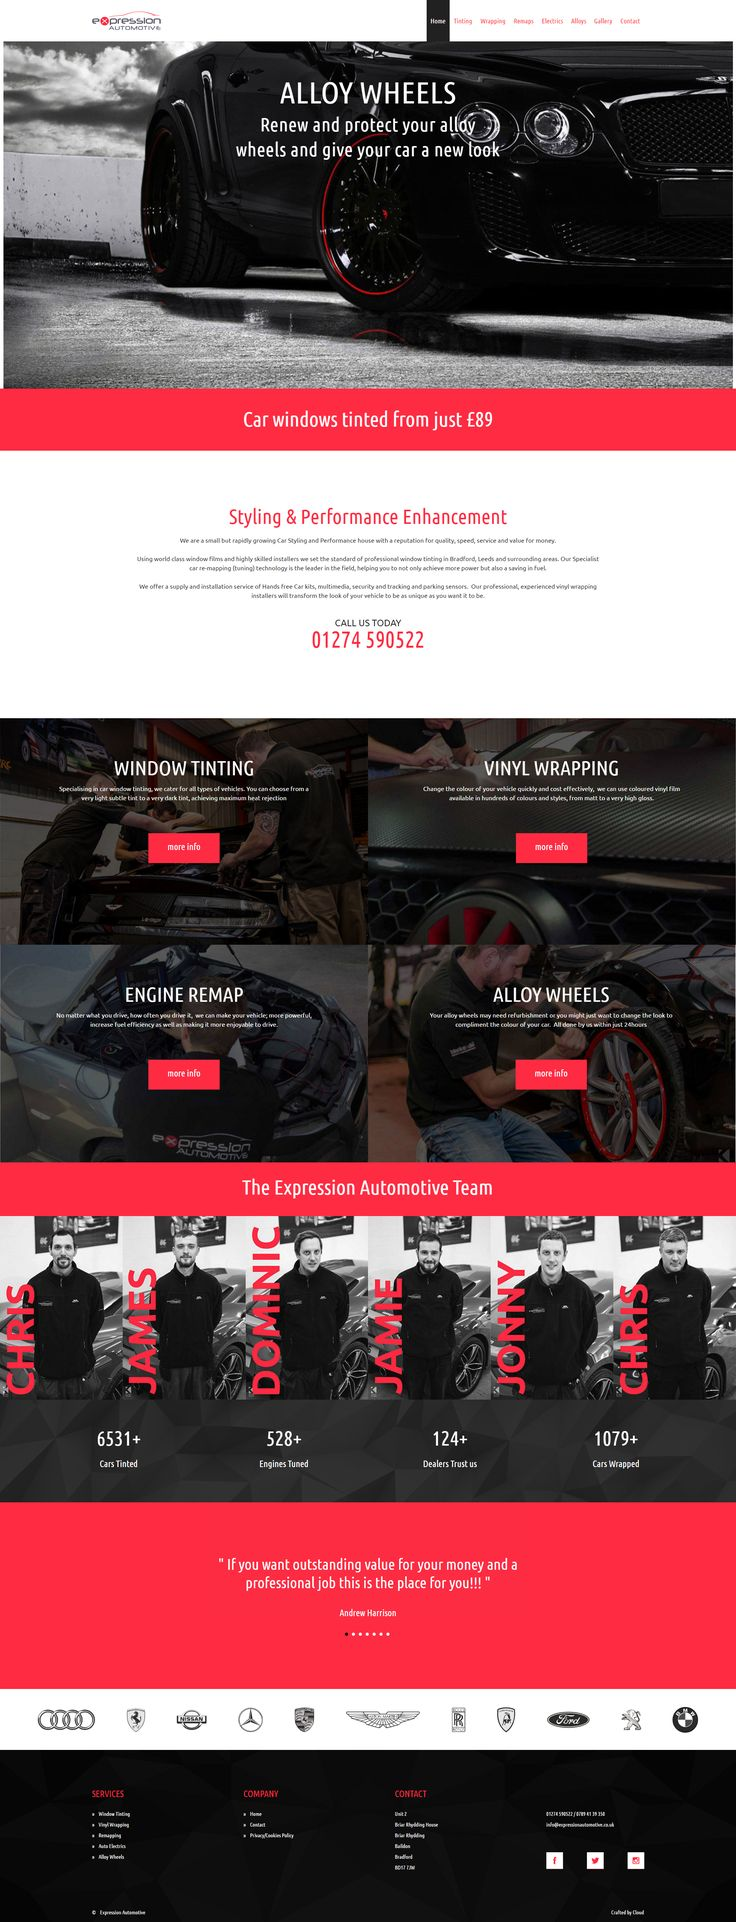 Website for Expression Automotive.  Fully responsive website.  #webdesign #responsive #design #automotive #bradford #cars #tinting #wrapping #tuning